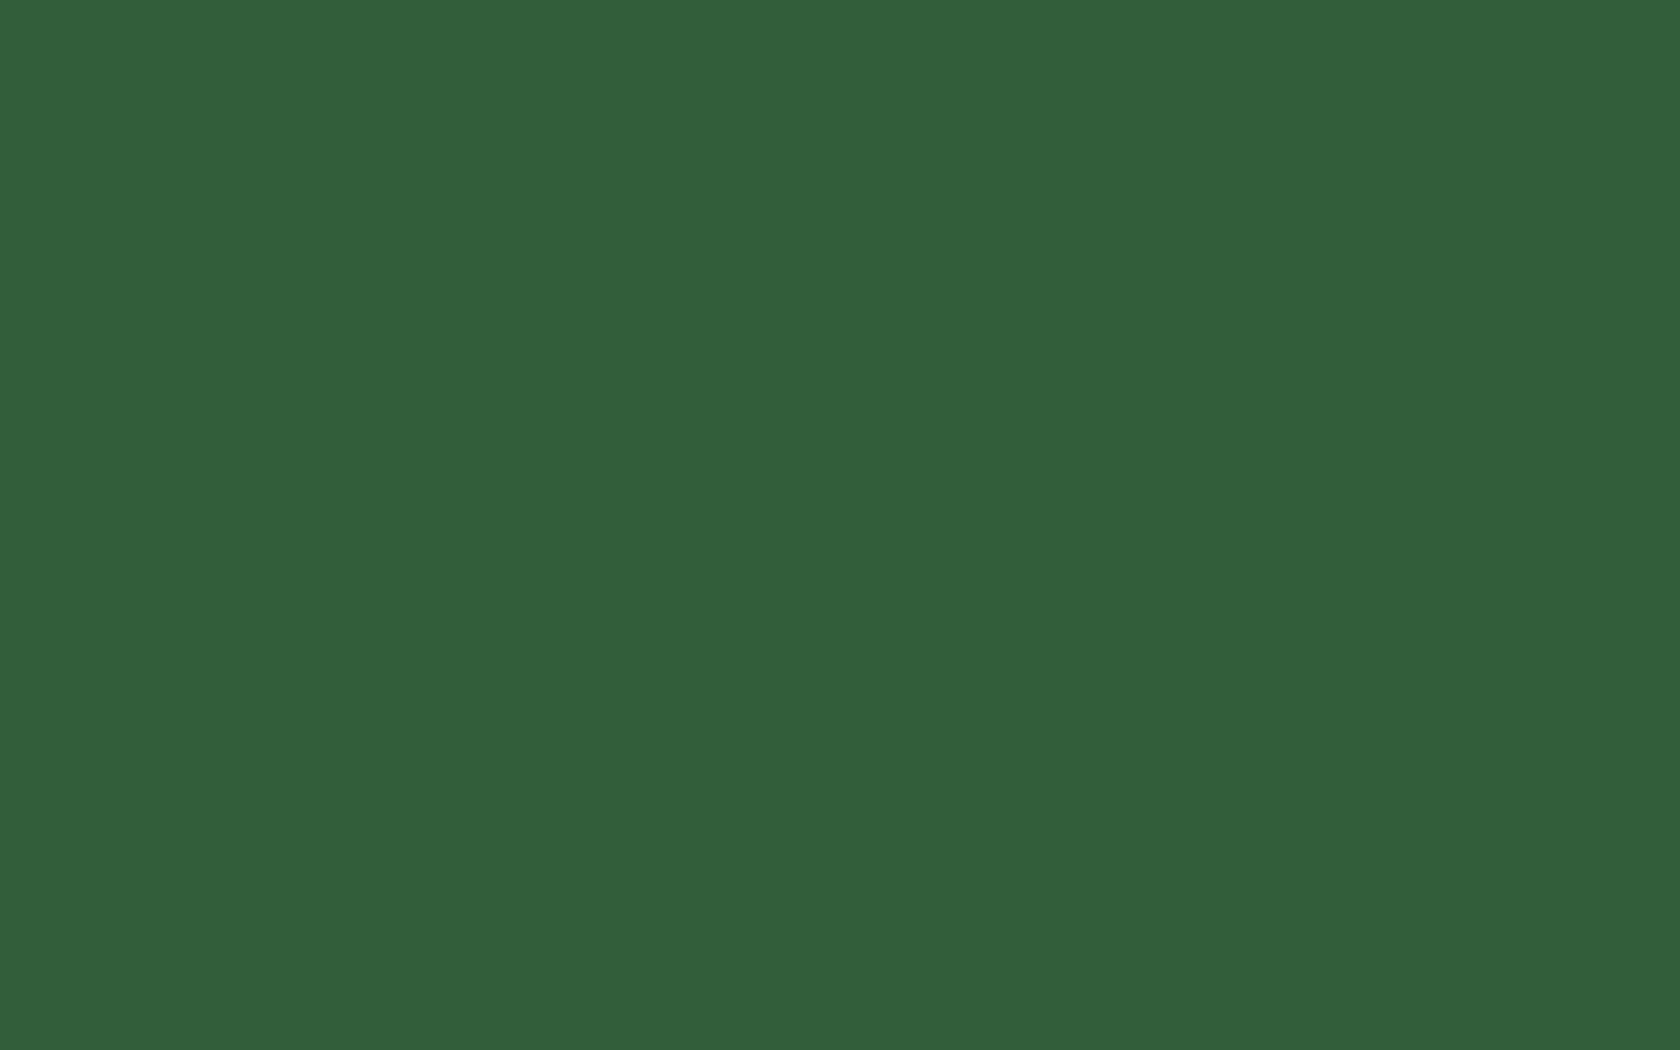 1680x1050 Deep Moss Green Solid Color Background